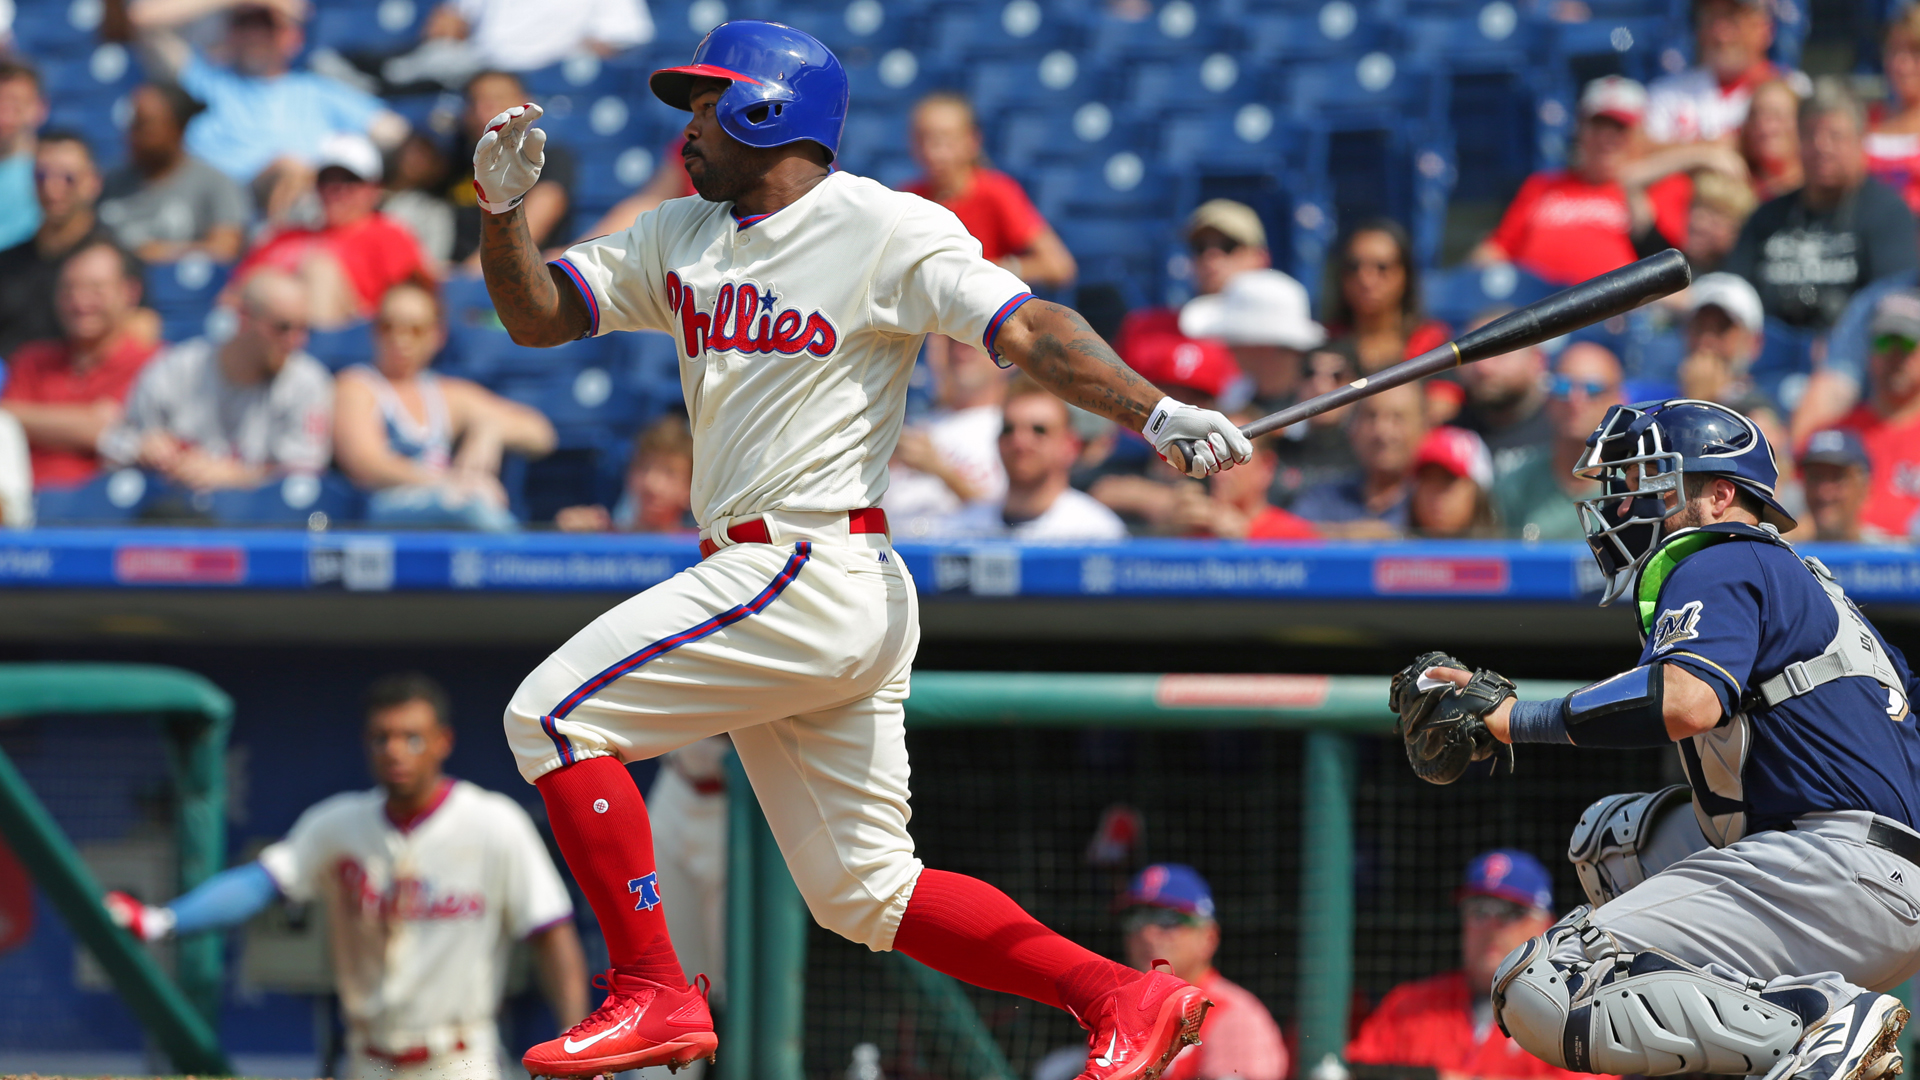 Altherr homers twice to lead Thompson, Phillies past Braves